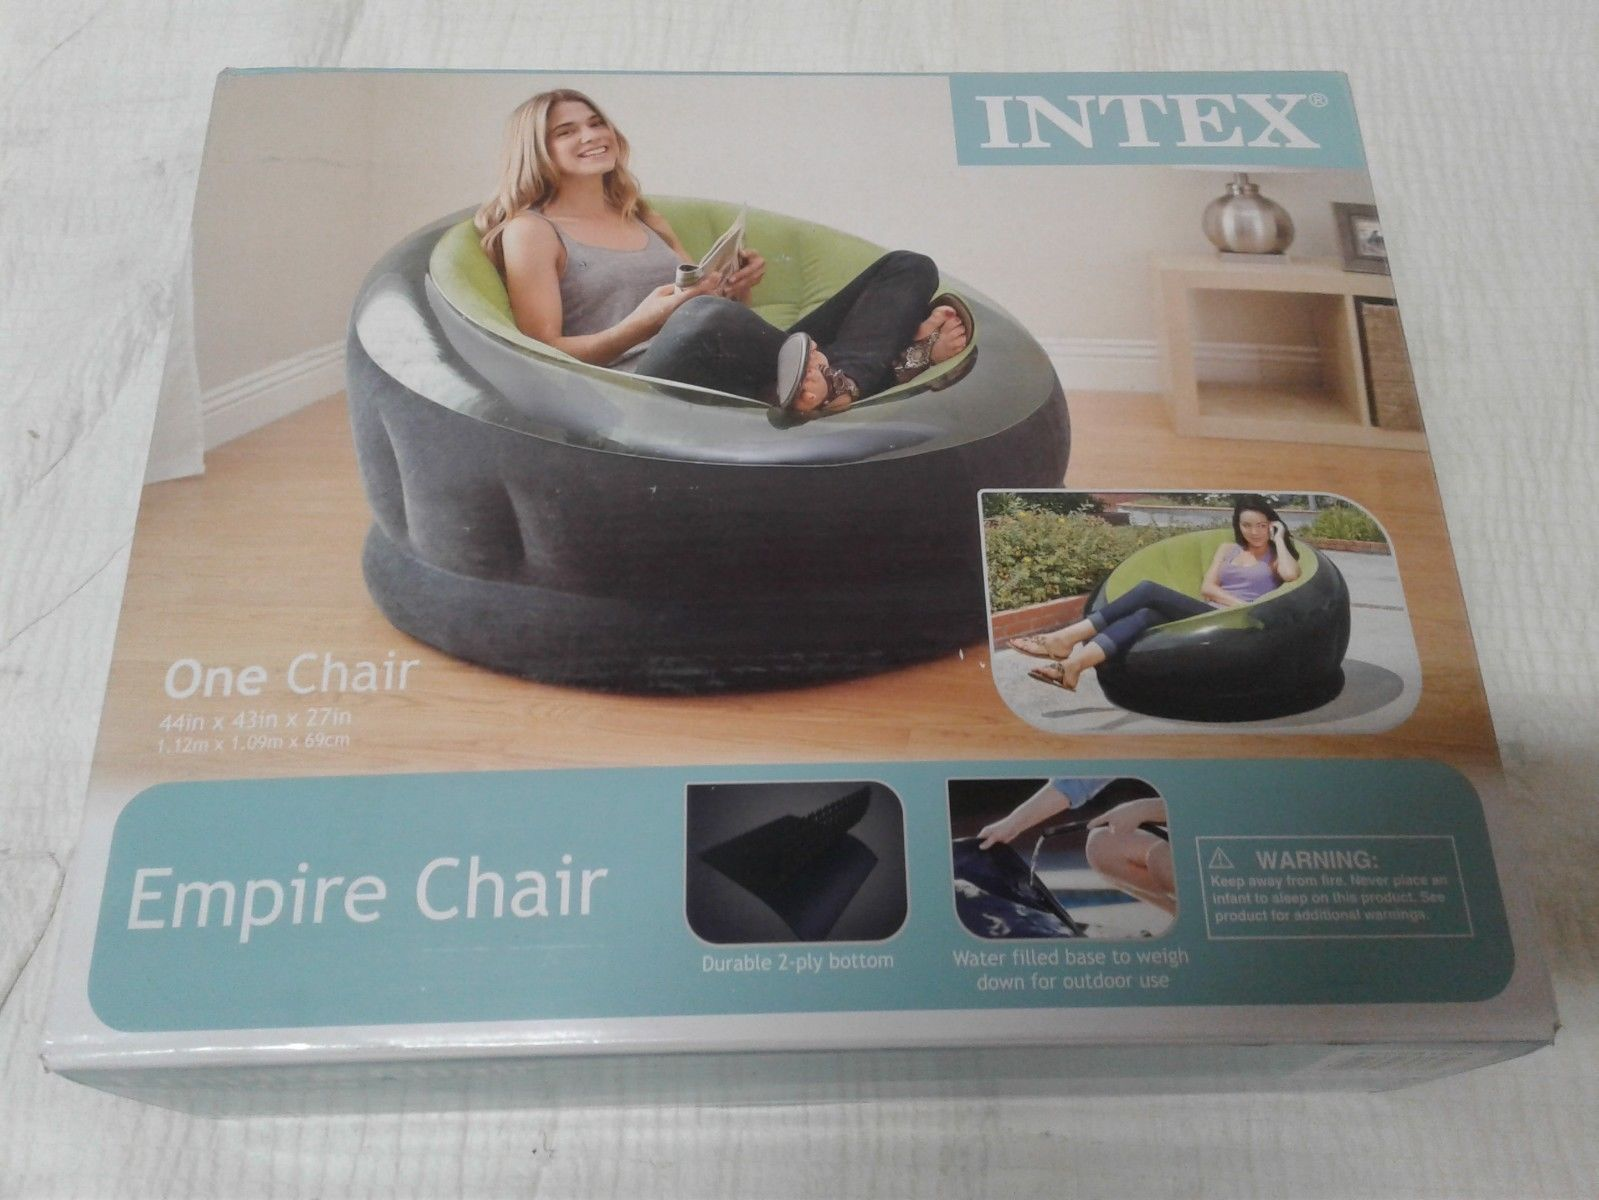 intex air chair pink rocking bean bags and inflatables 48319 inflatable lime green buy it now only 15 99 on ebay